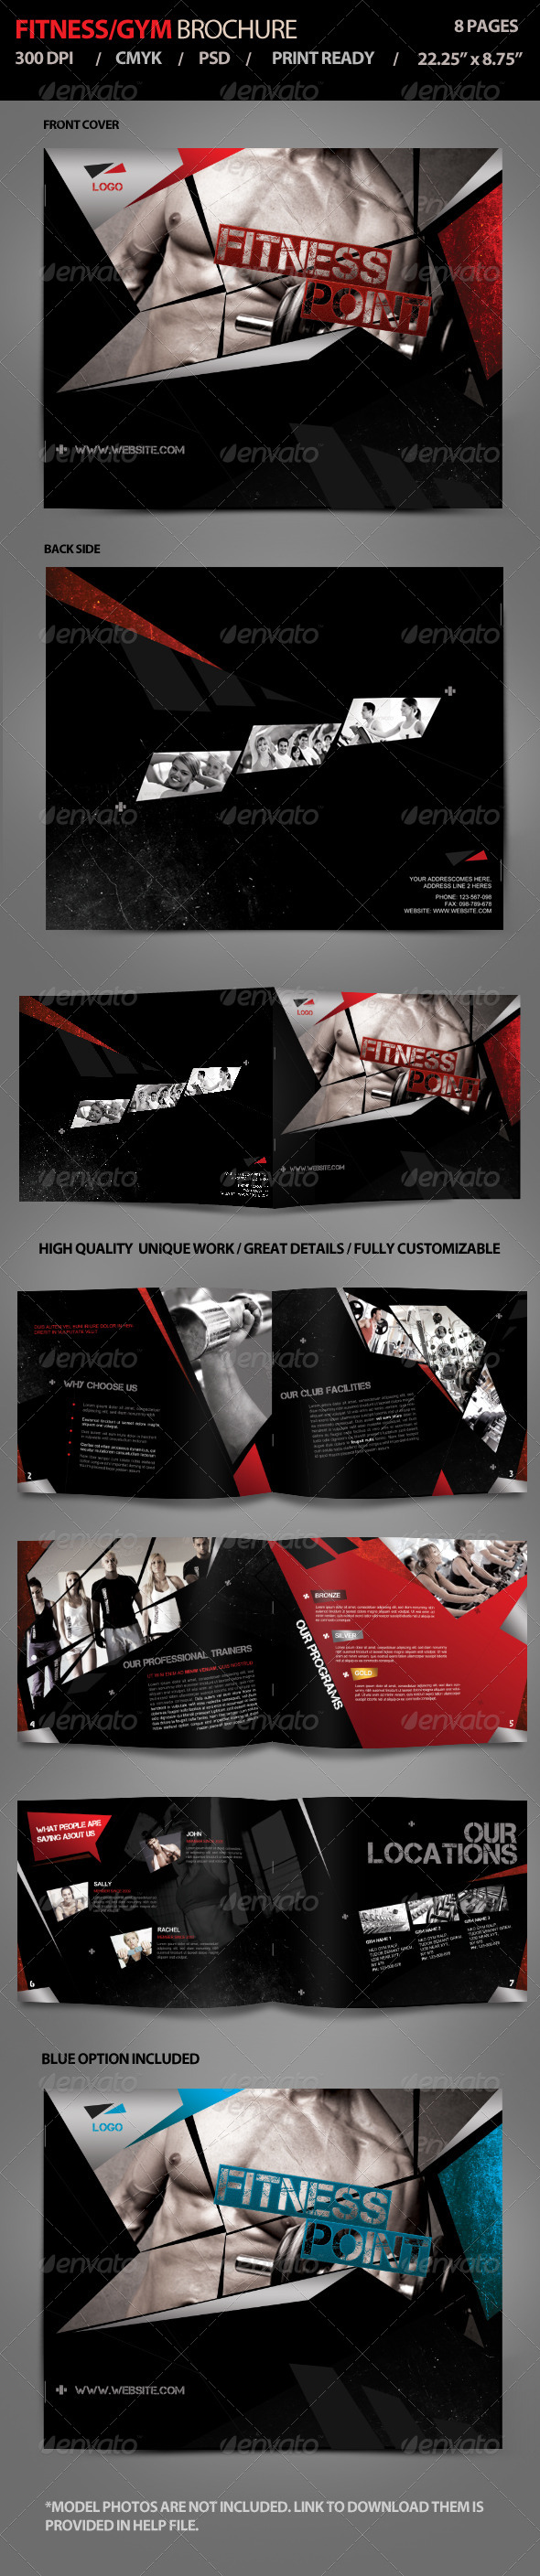 GraphicRiver Fitness Gym Brochure Vol1 6067606